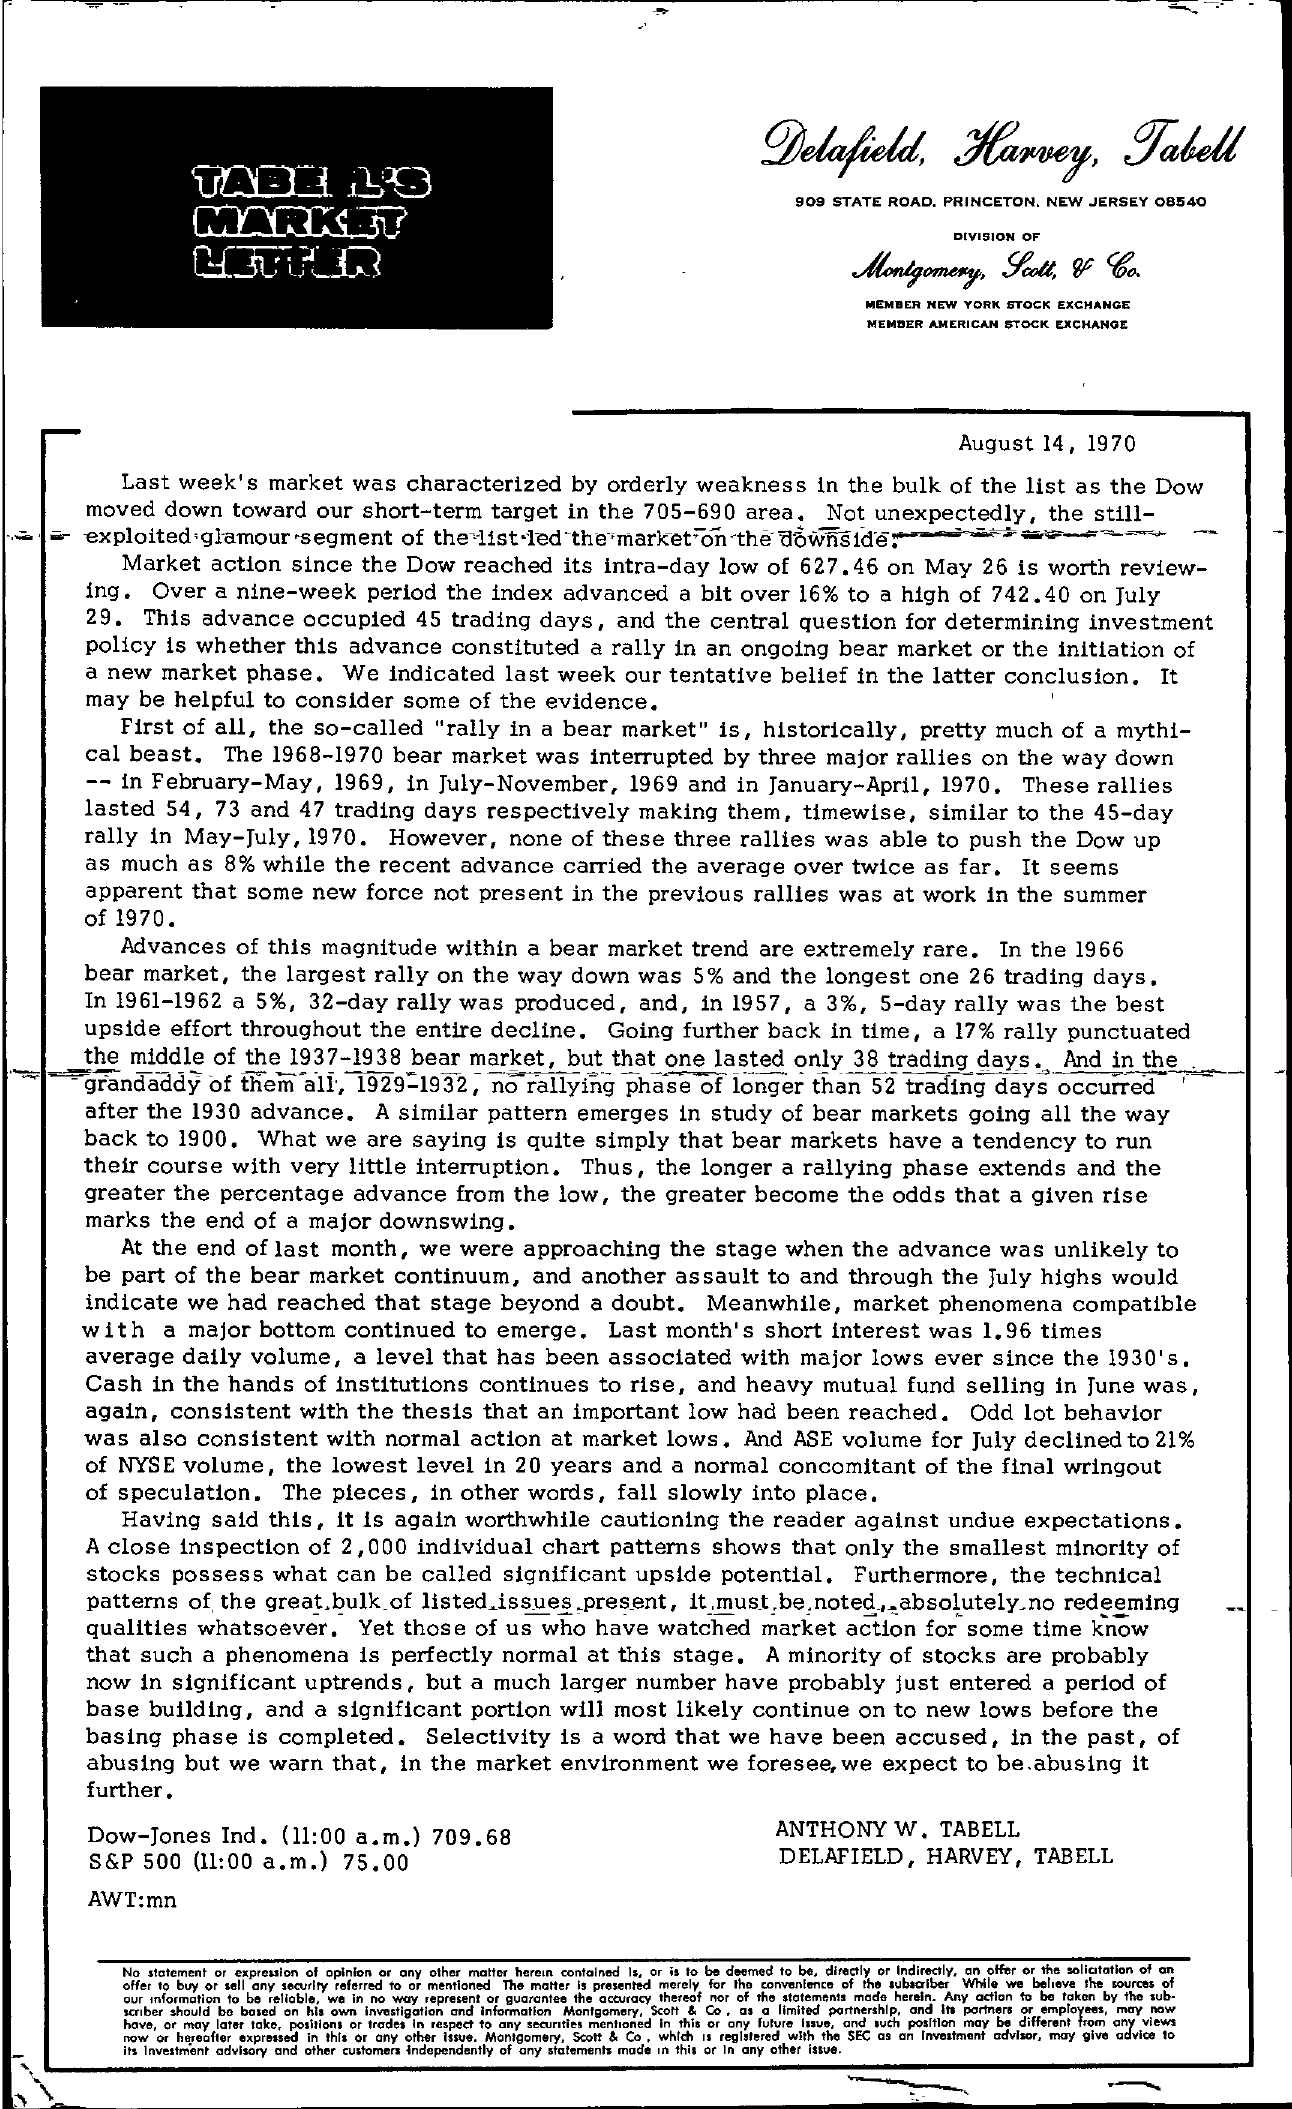 Tabell's Market Letter - August 14, 1970